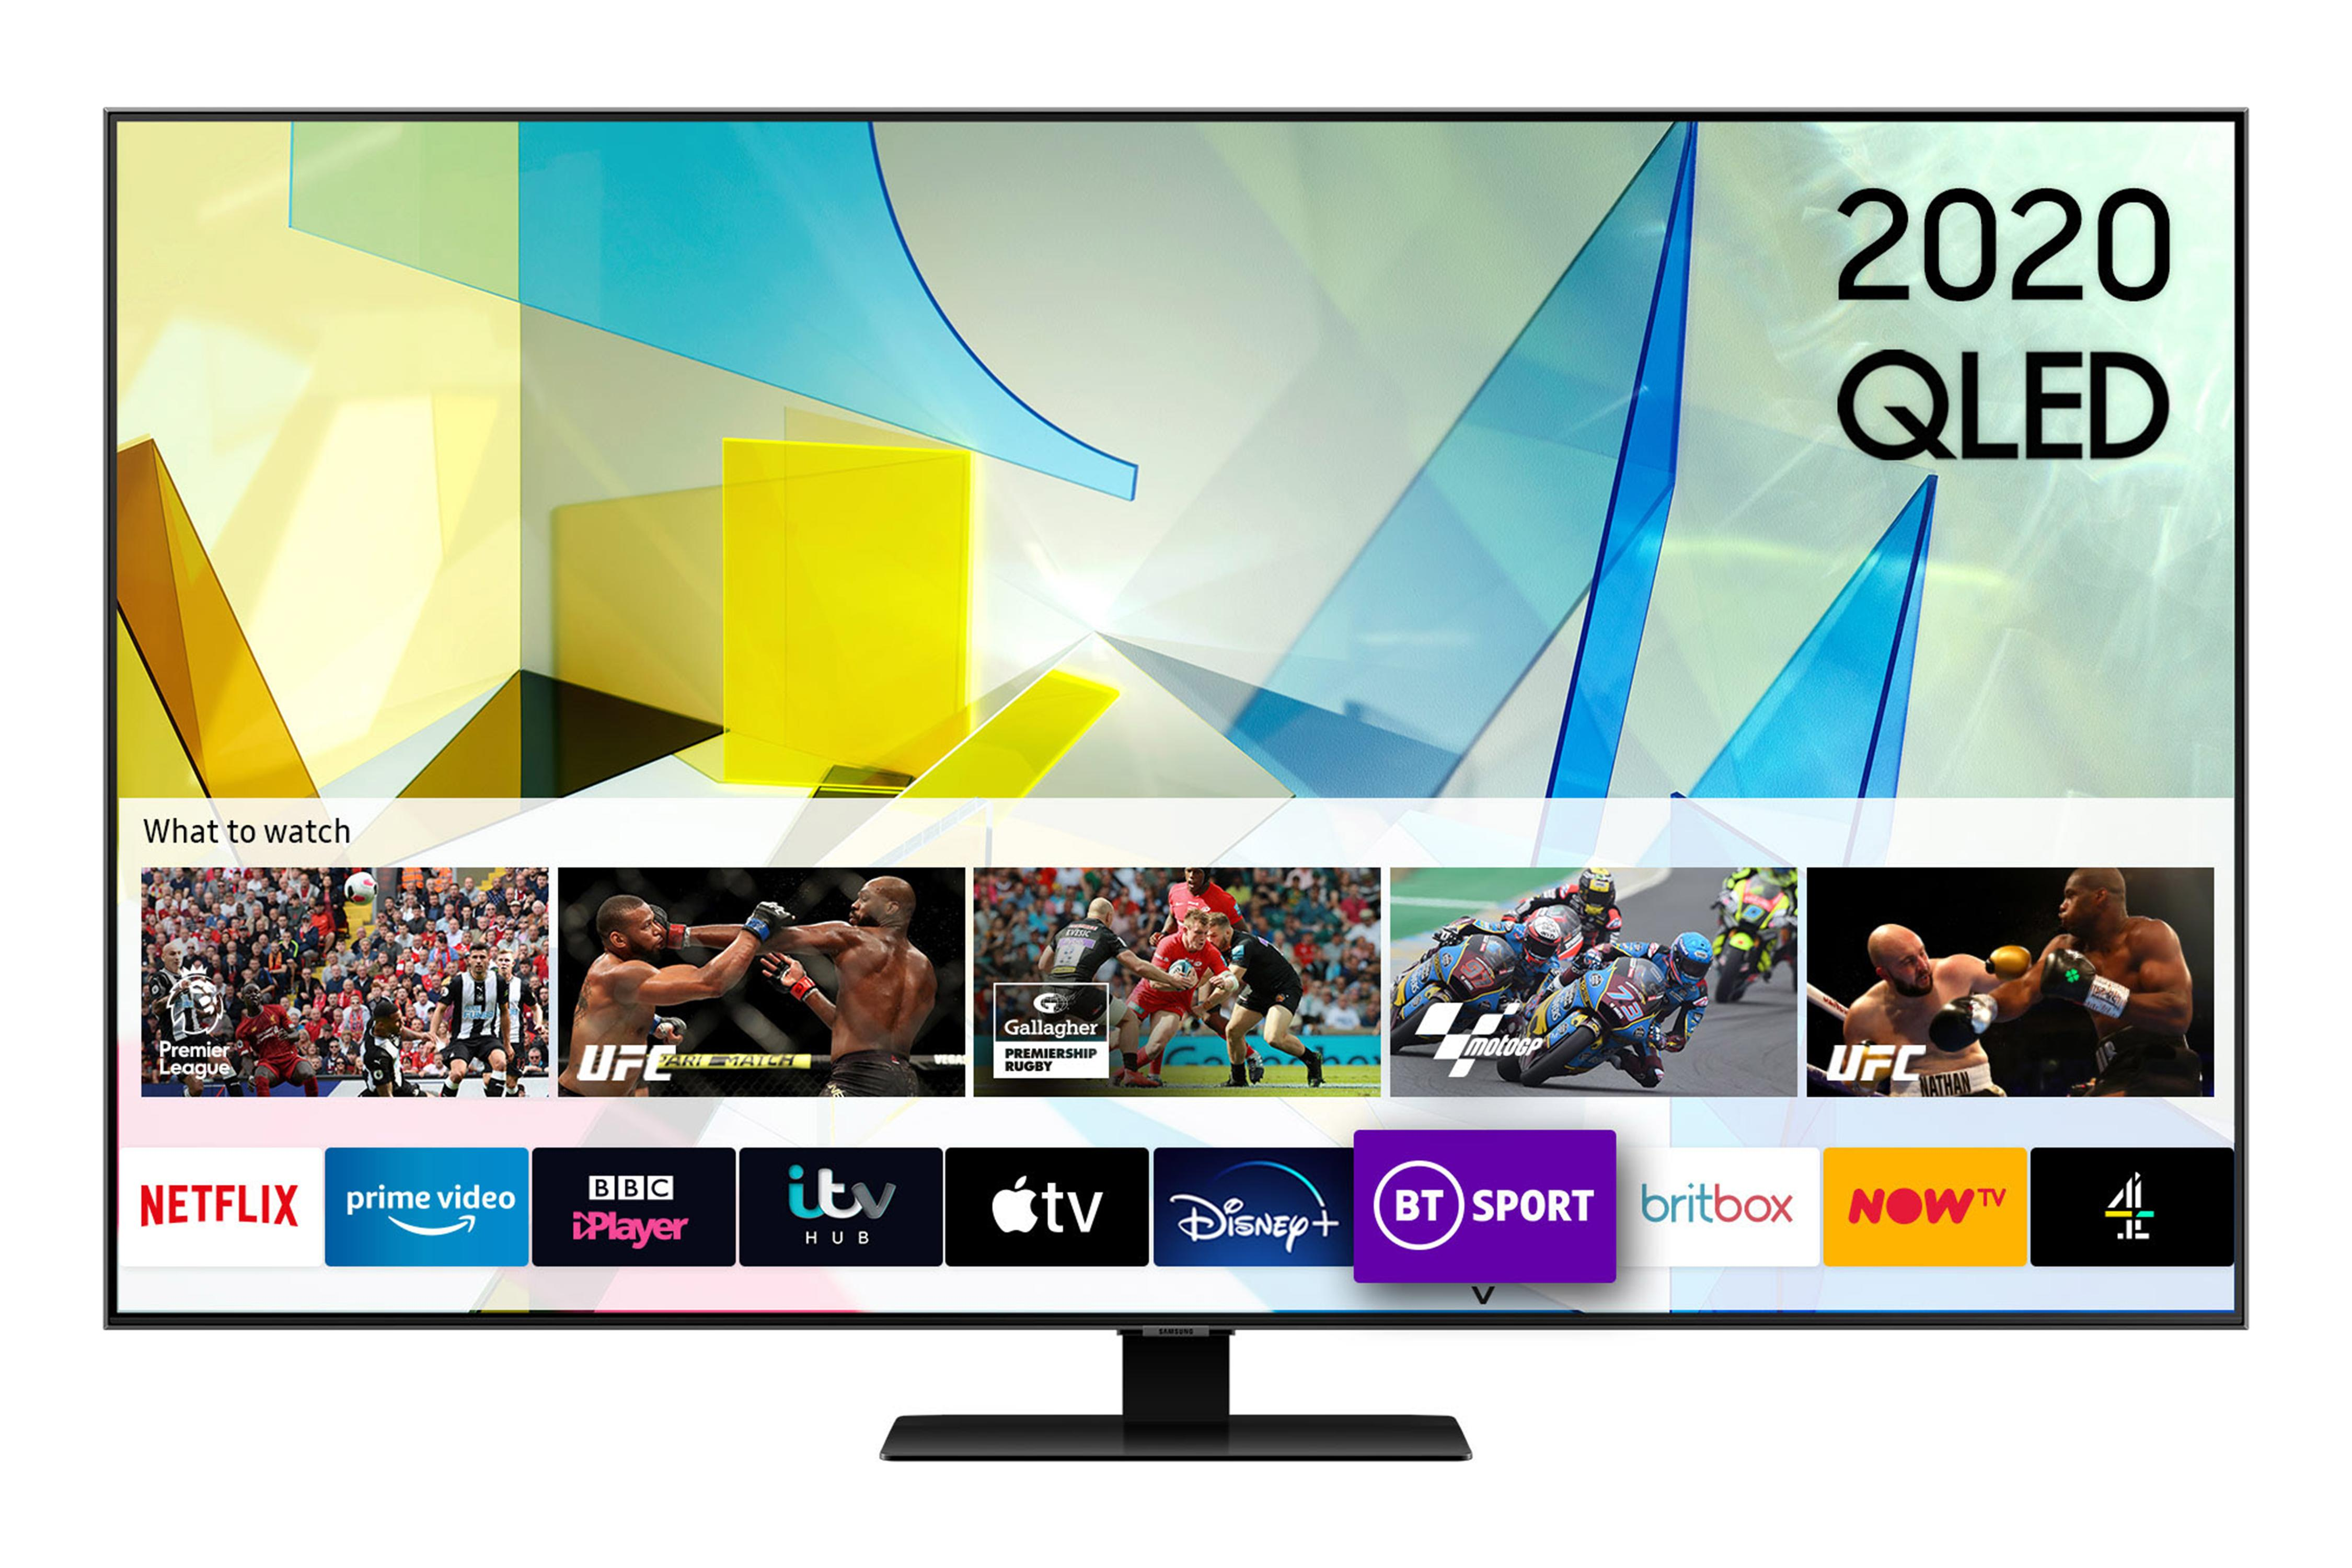 Samsung QE49Q80T (2020) 49 inch QLED 4K HDR 1500 Smart TV with Tizen OS